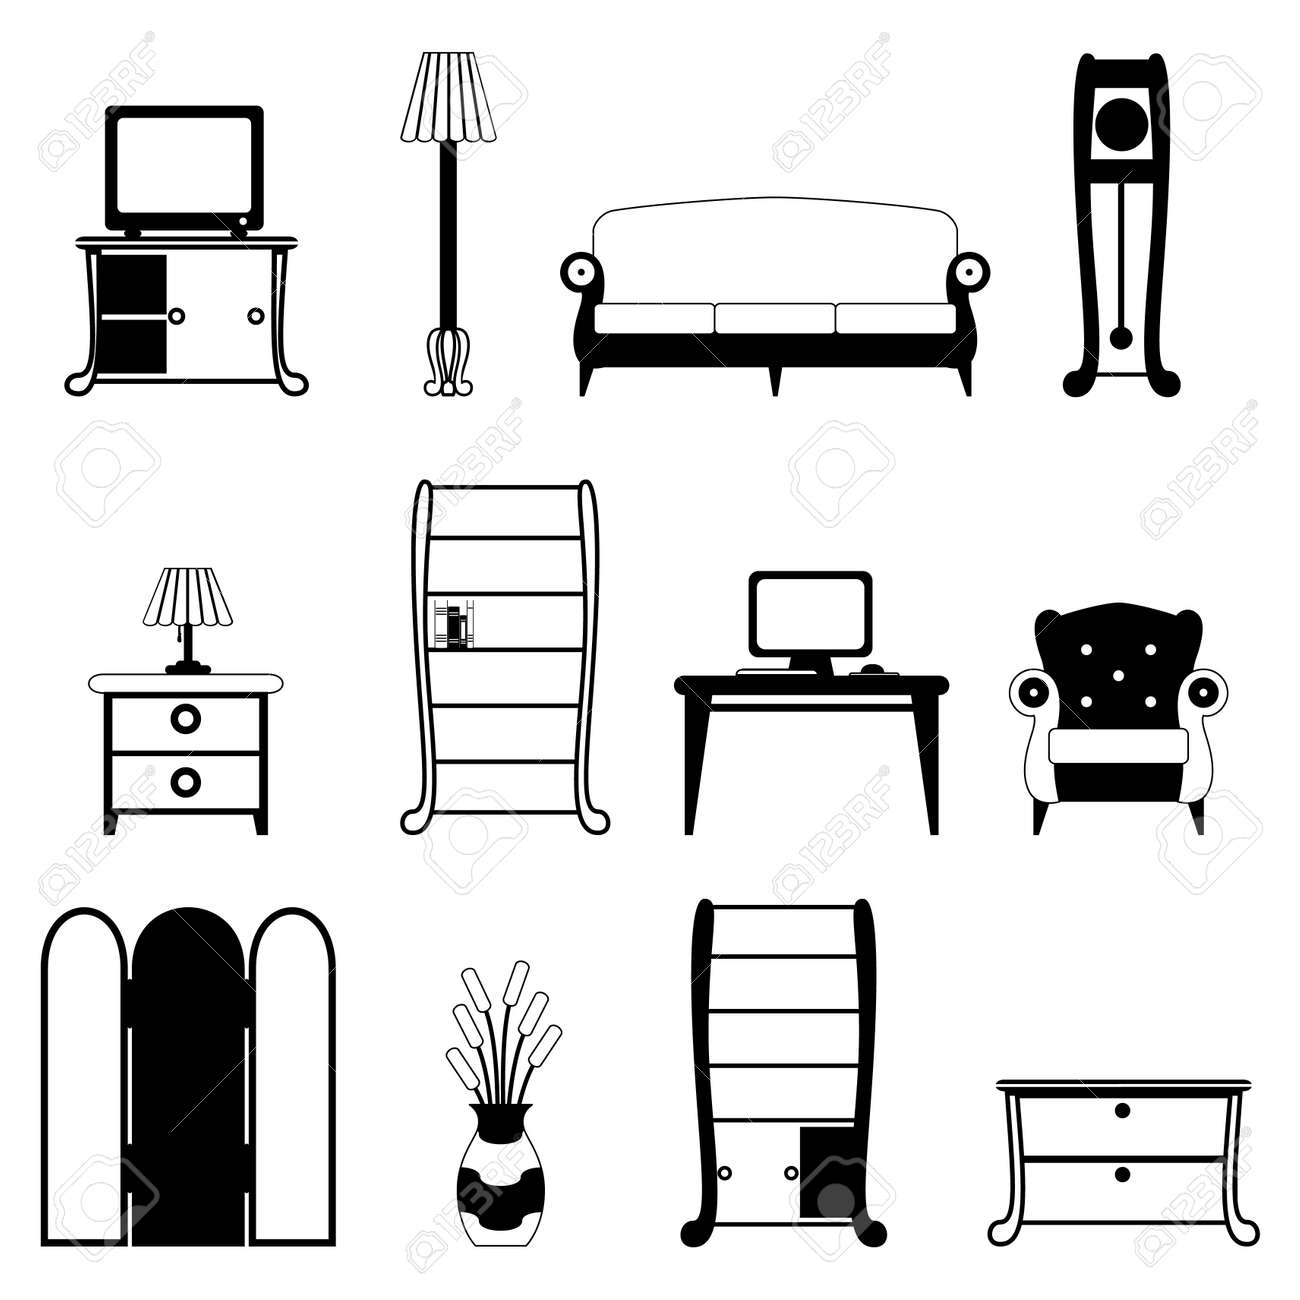 Modern Furniture Icon furniture objects royalty free cliparts, vectors, and stock